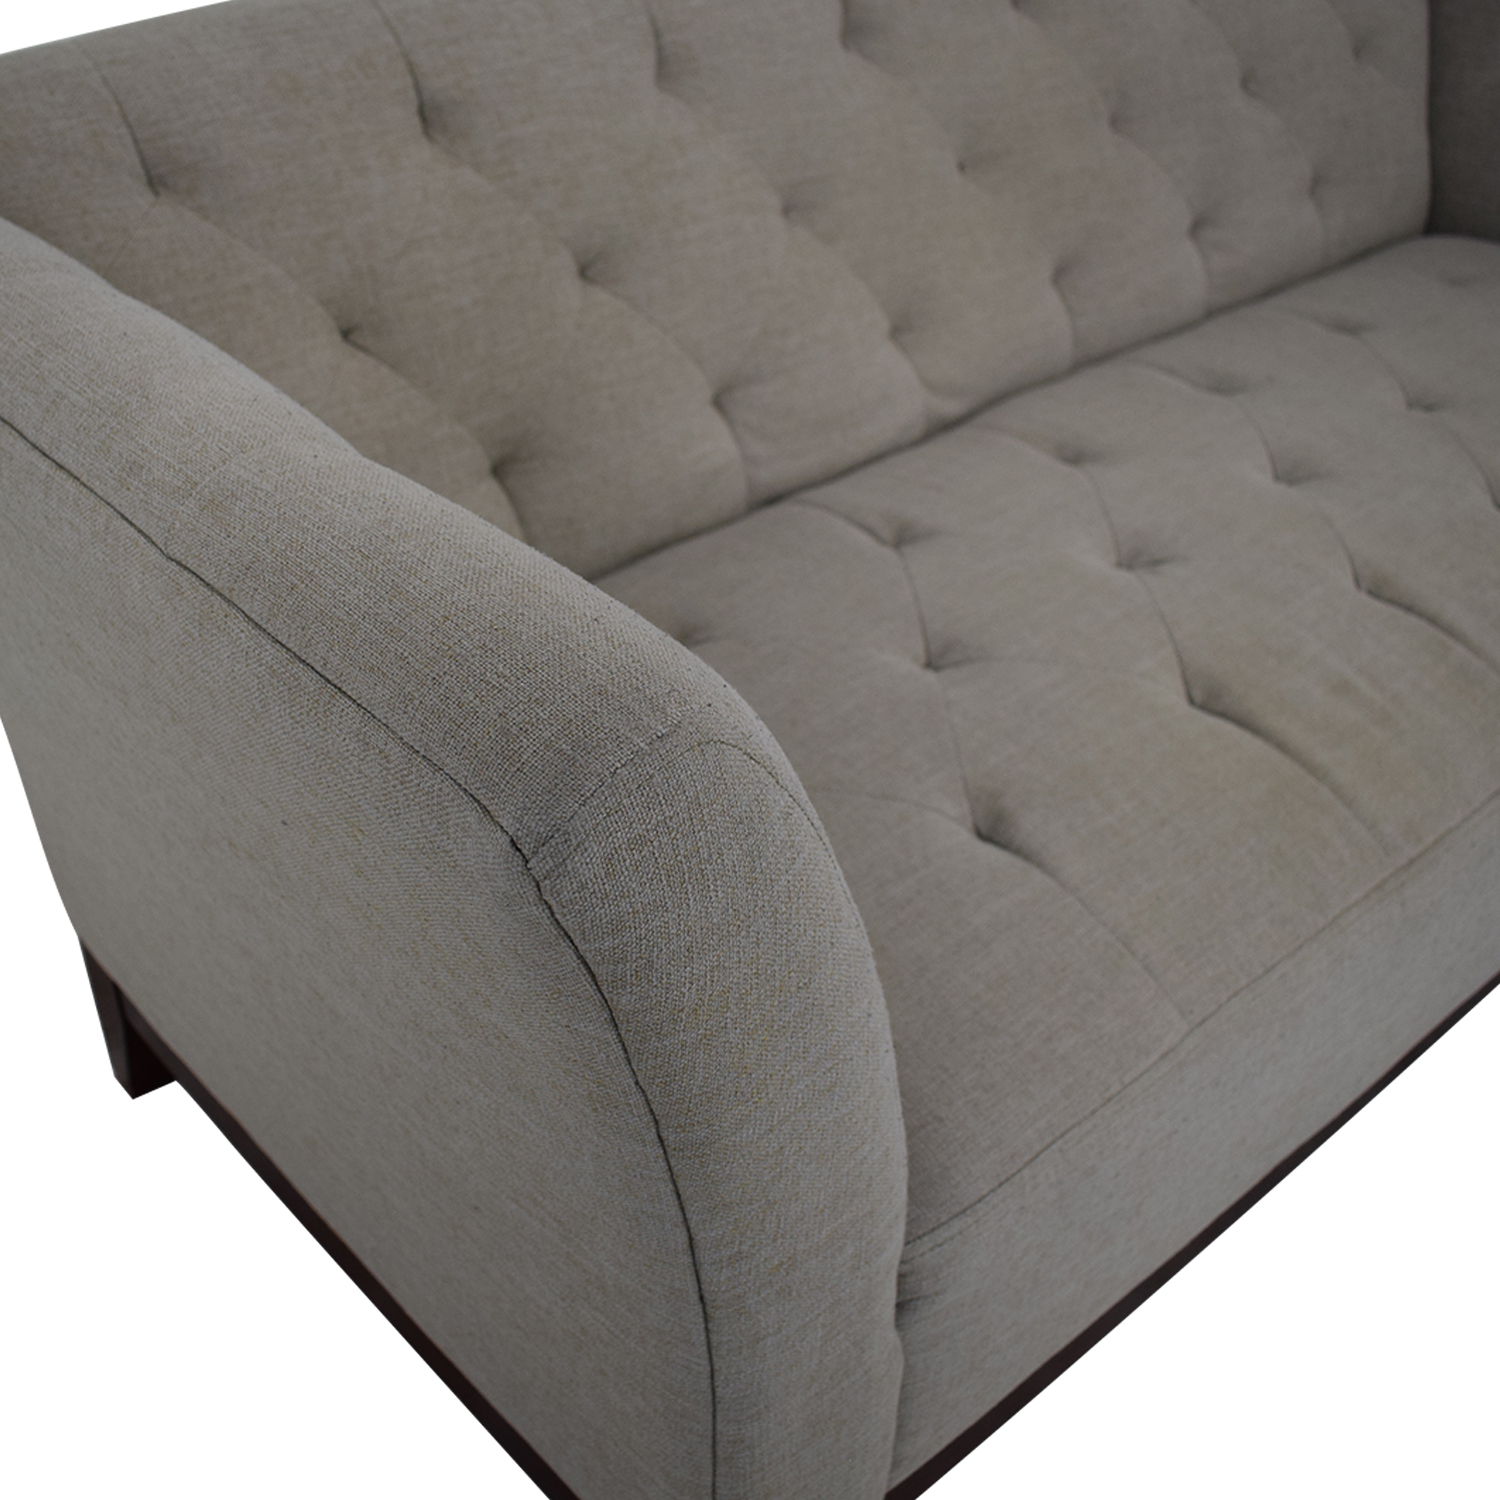 Macy's Macy's Tory Apartment Size Sofa second hand